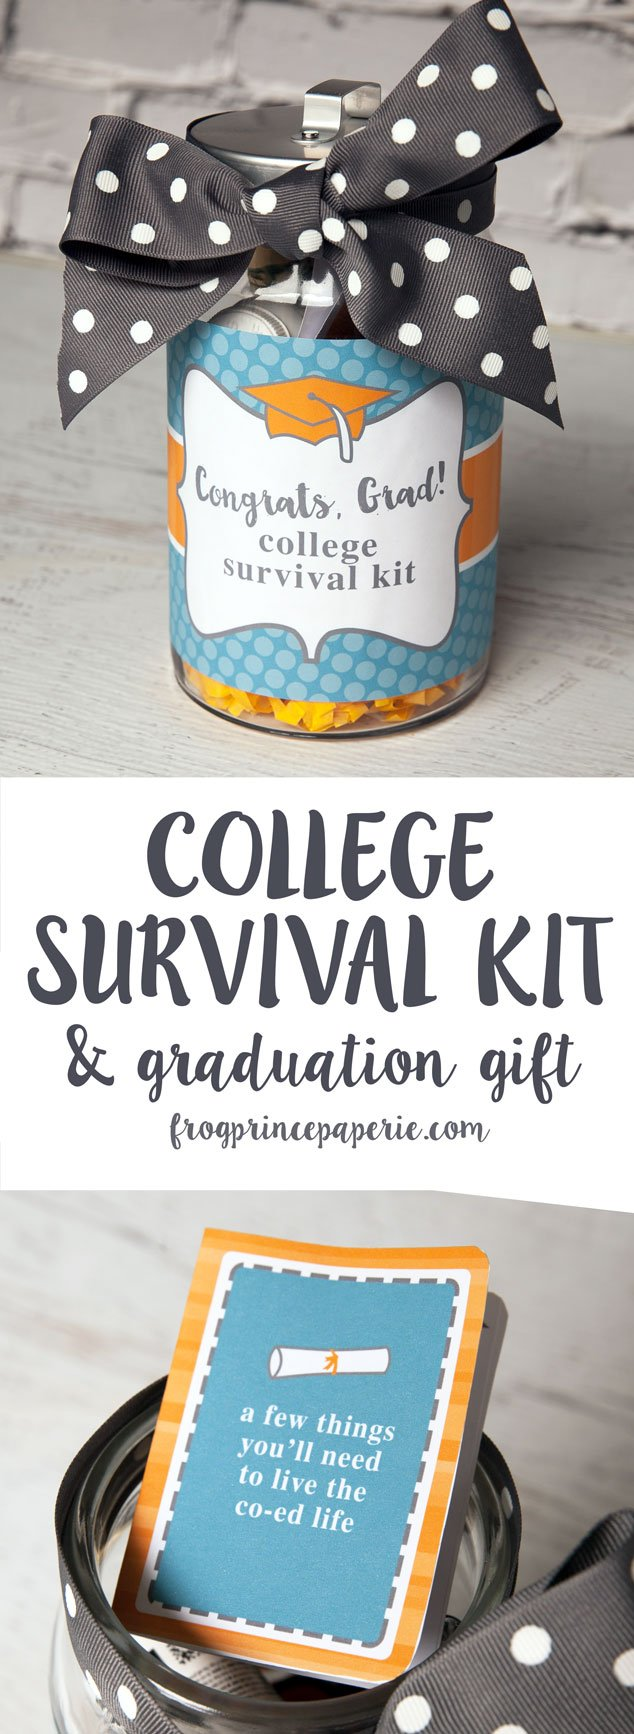 College Survival Kit Diy Graduation Gift Frog Prince Paperie